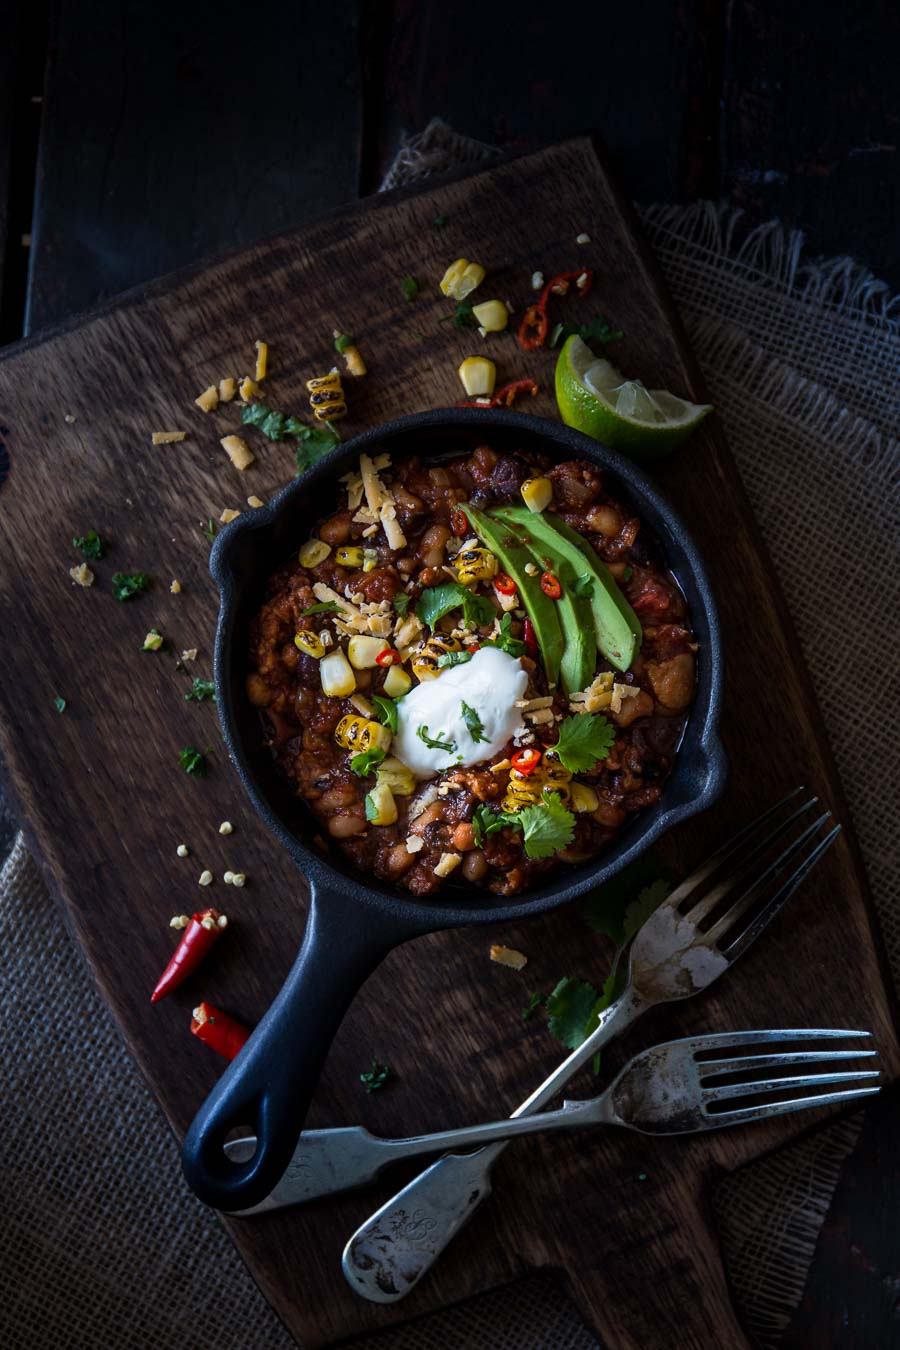 A black cast iron skillet containing turkey chilli, sweet corn, avocado and herbs, sits on a rustic wooden chopping board with textured textiles and forks